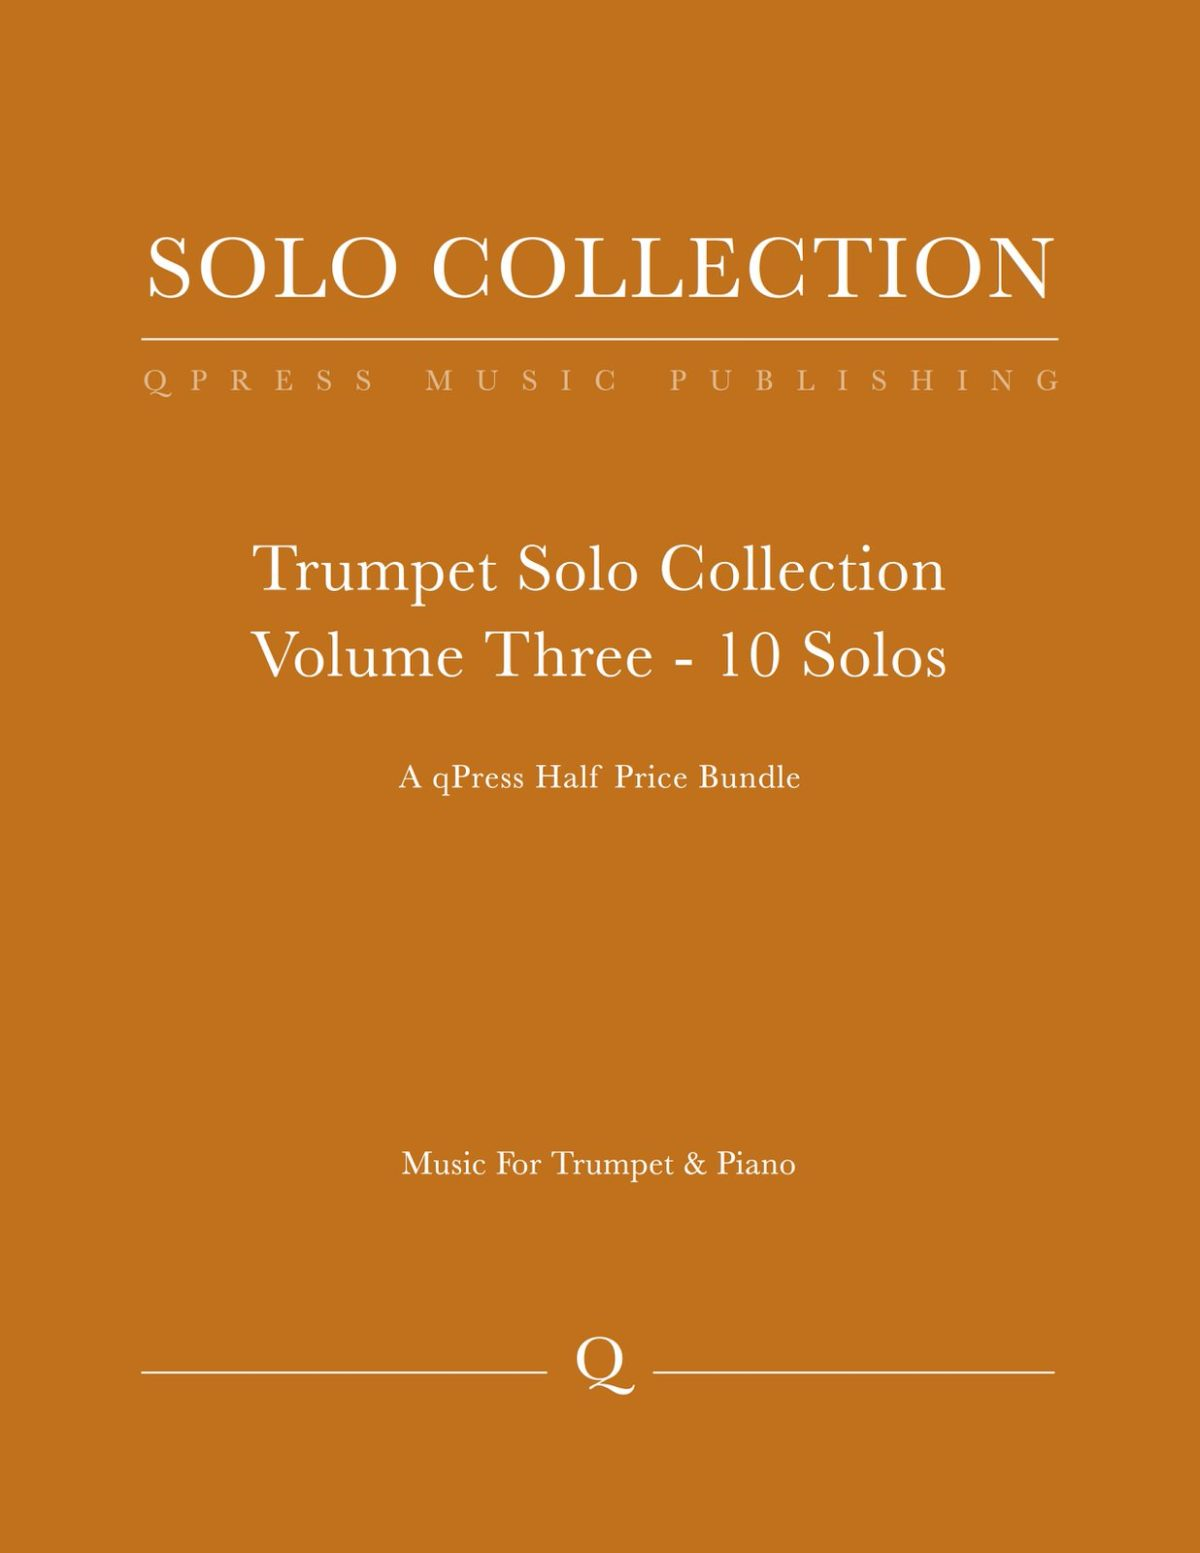 Solo Collection Vol.3